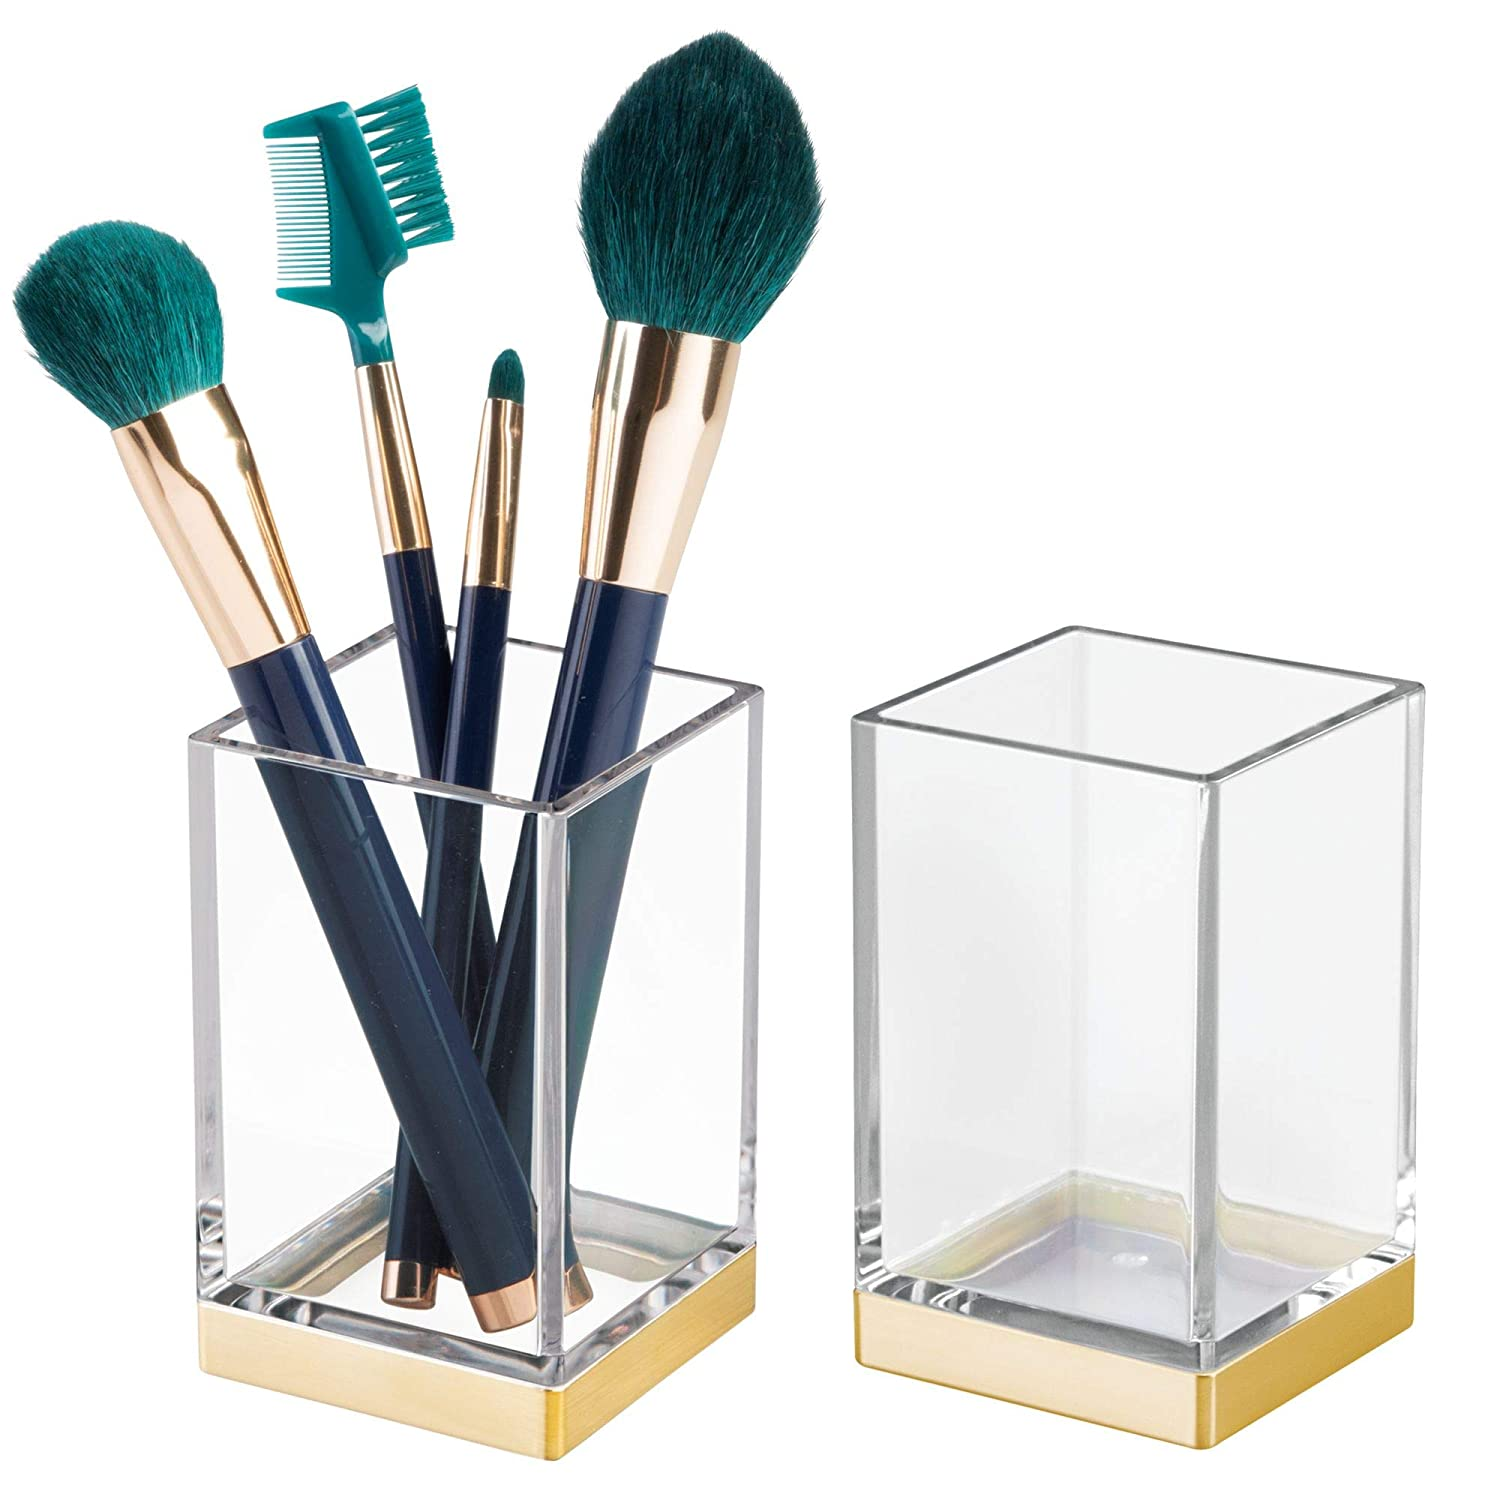 mDesign Modern Square Tumbler Cup Bathroom Vanity Countertops Mouthwash/Mouth Rinse, Storing Organizing Makeup Brushes, Eye Liners, Accessories - Slim Design, 2 Pack - Clear/Gold MetroDecor